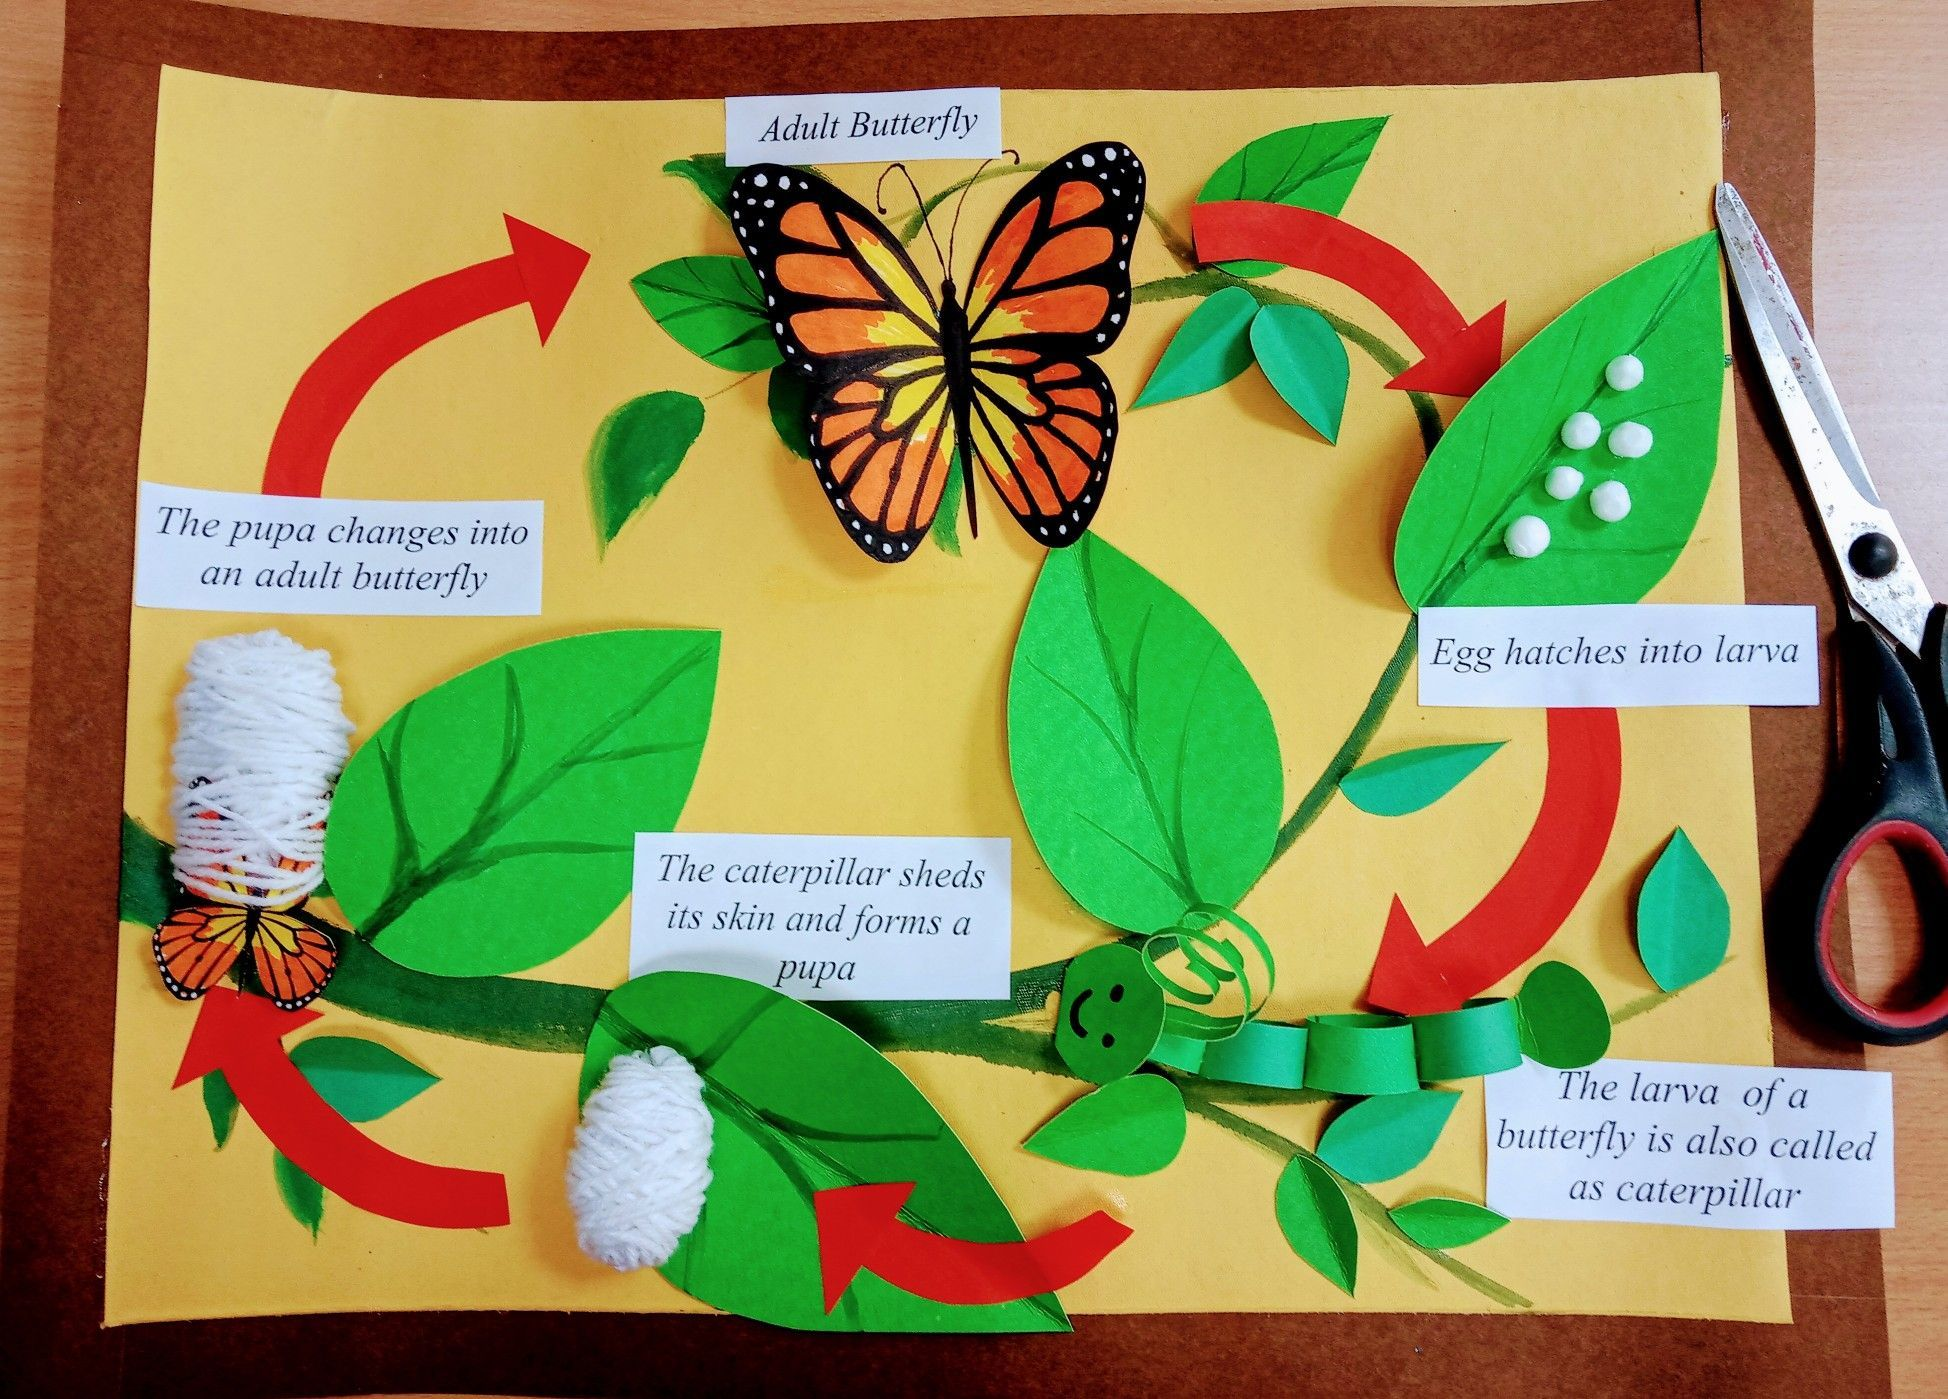 Butterfly Life Cycle Board